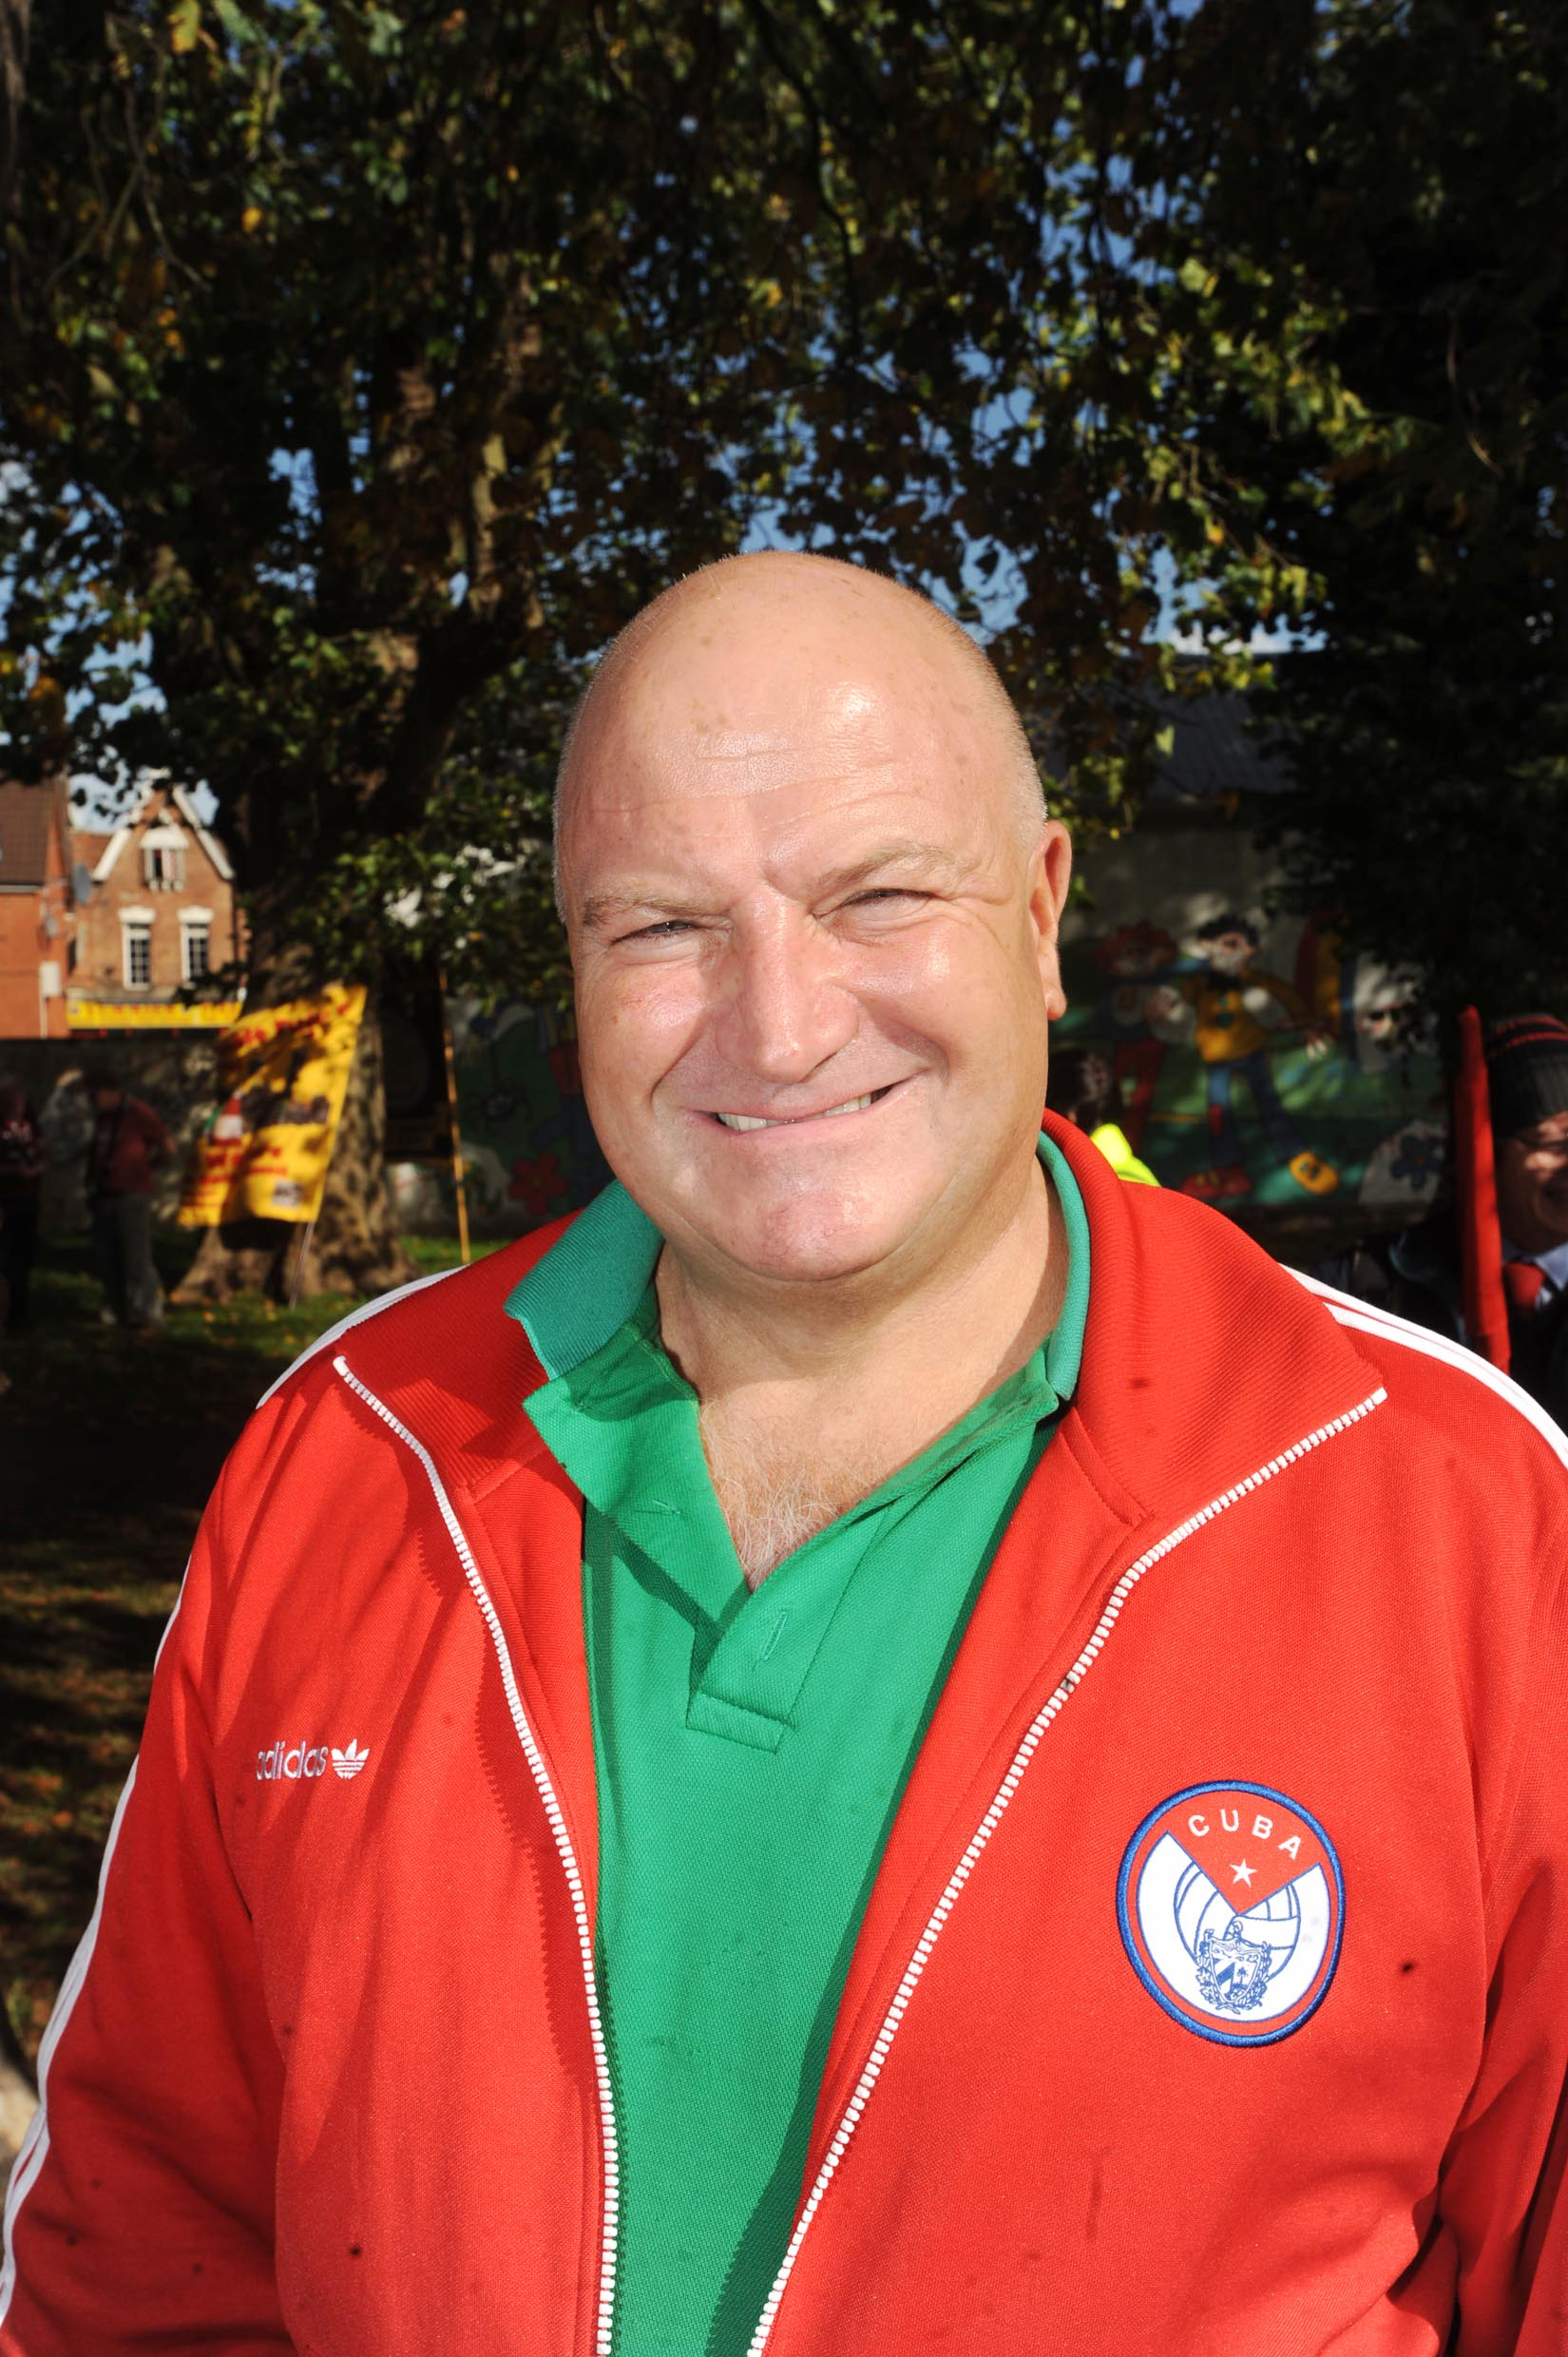 Rail, Maritime and Transport union leader Bob Crow has died at the age of 52